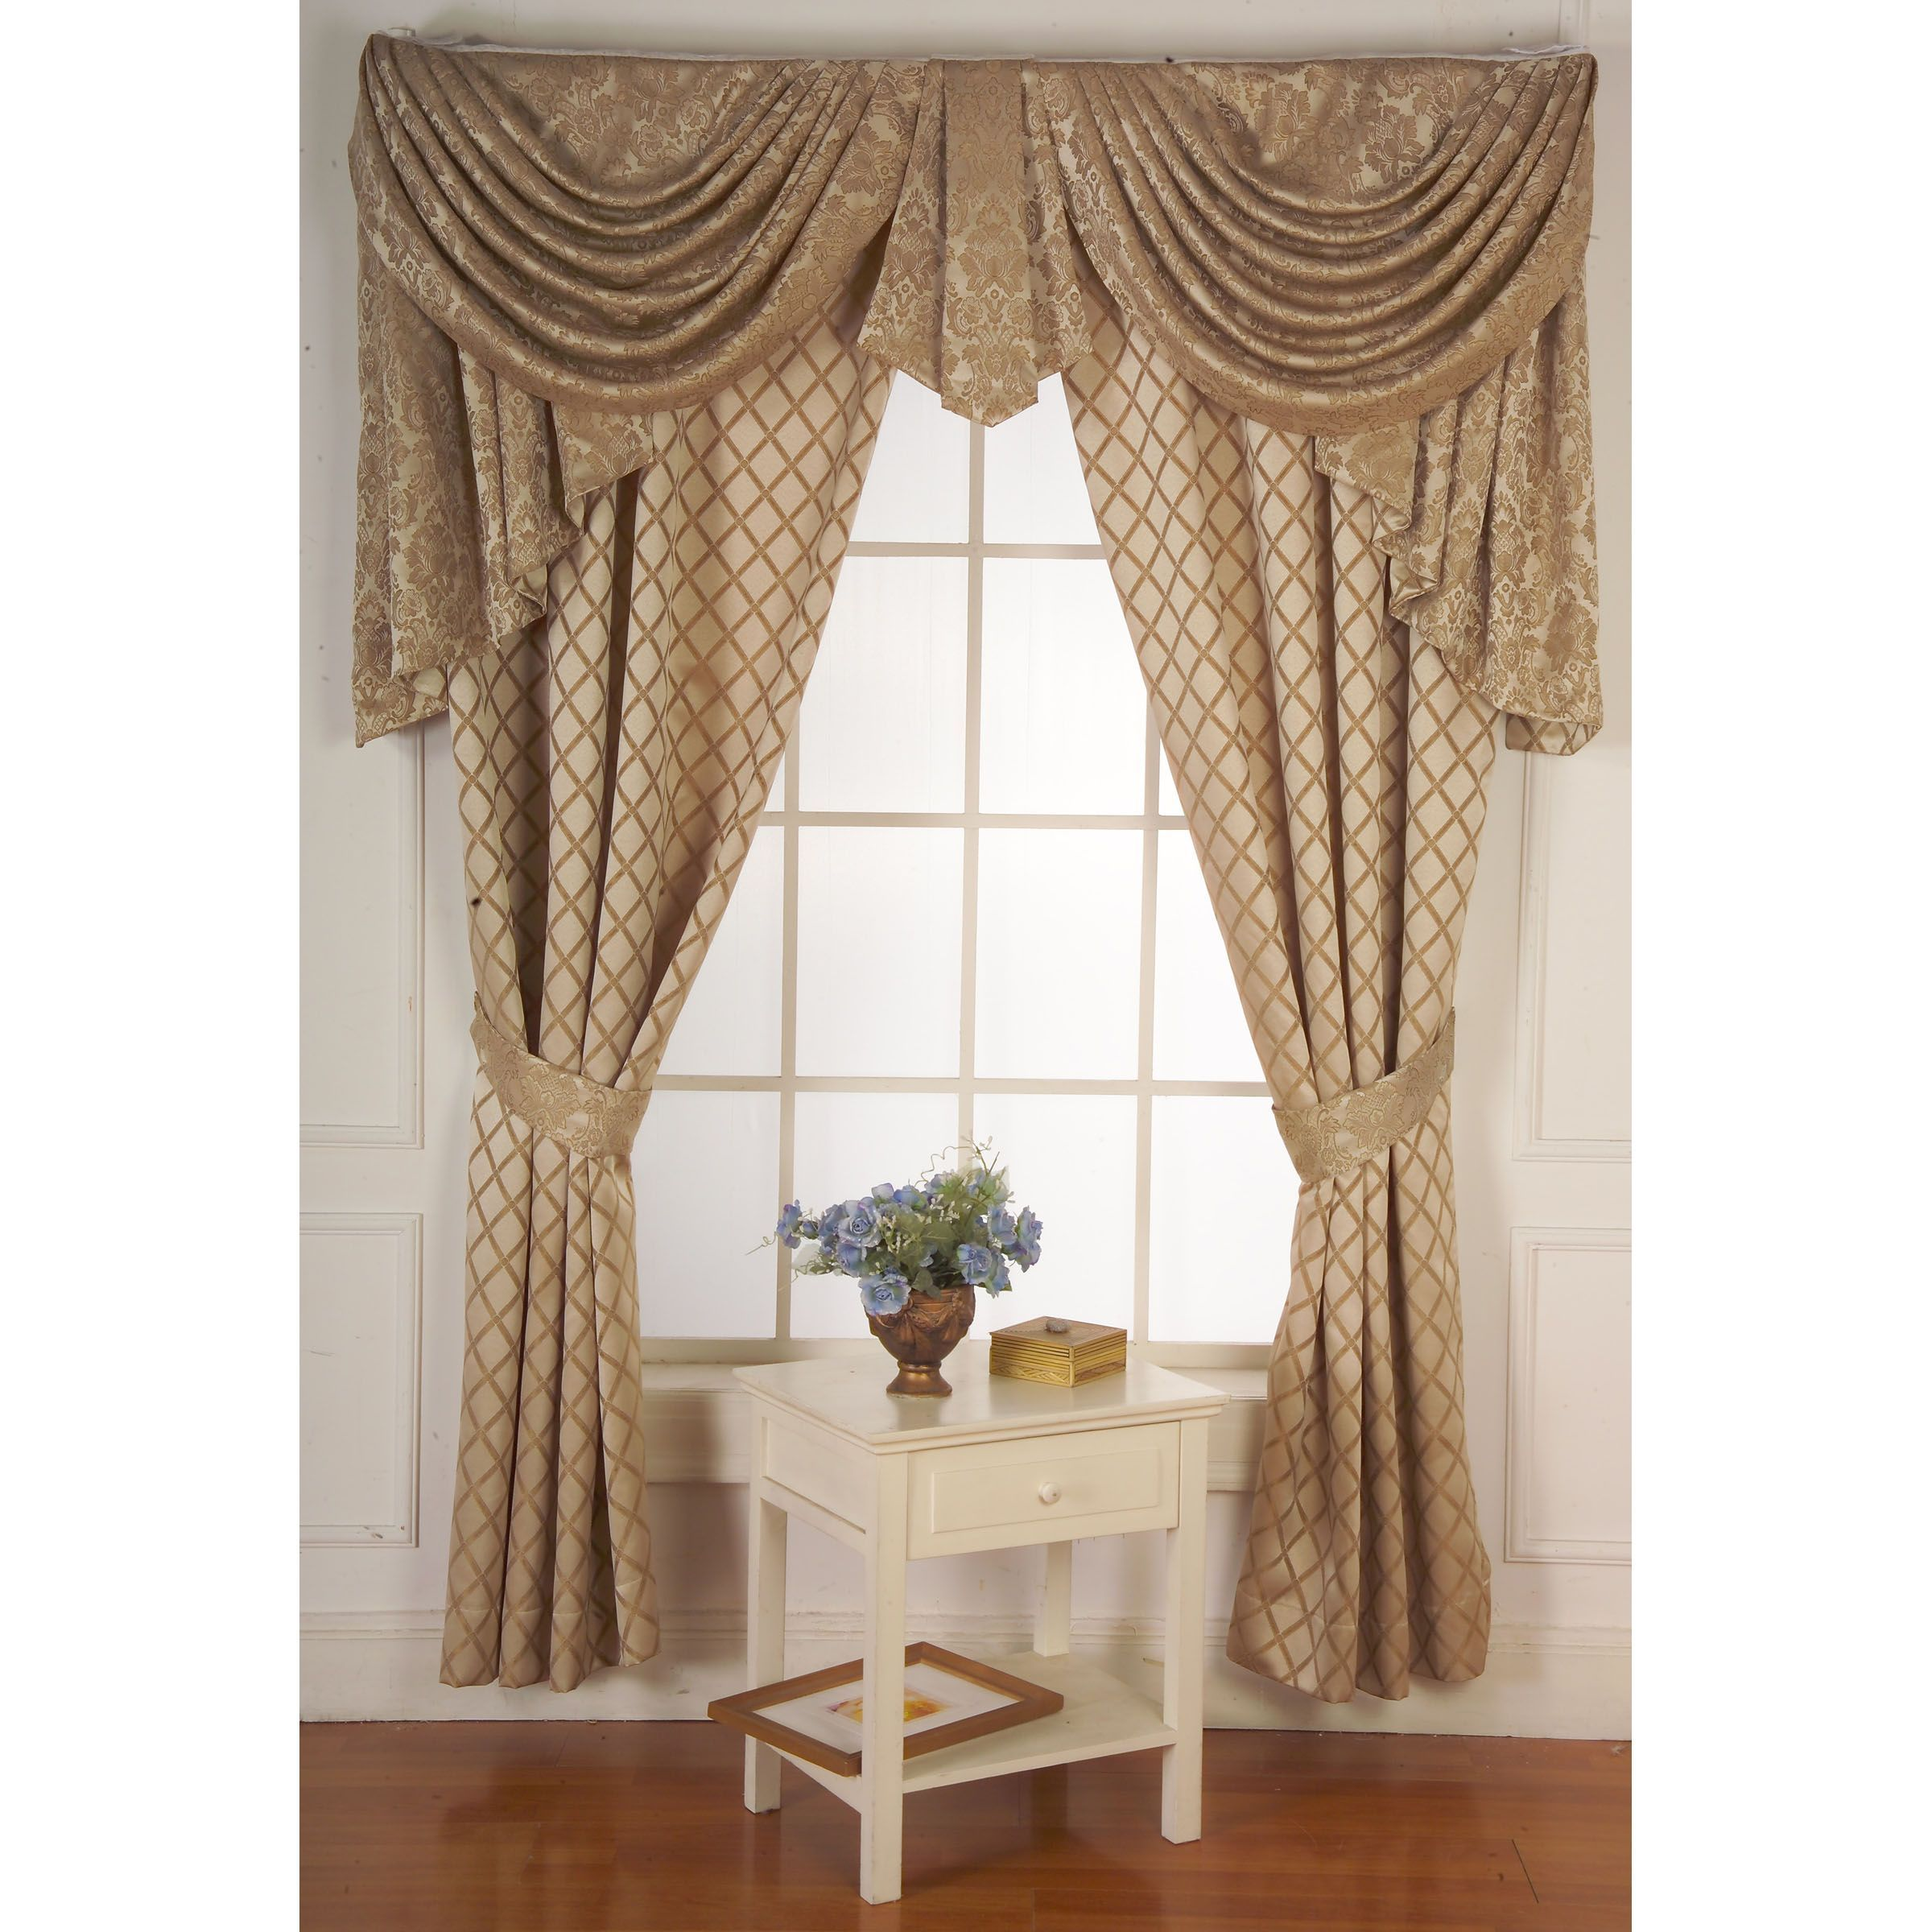 Sears Curtains Ricardo Trading Canvas Blackout Grommet Pattio Panel W Wand 112x84 Window Living Room Bed In